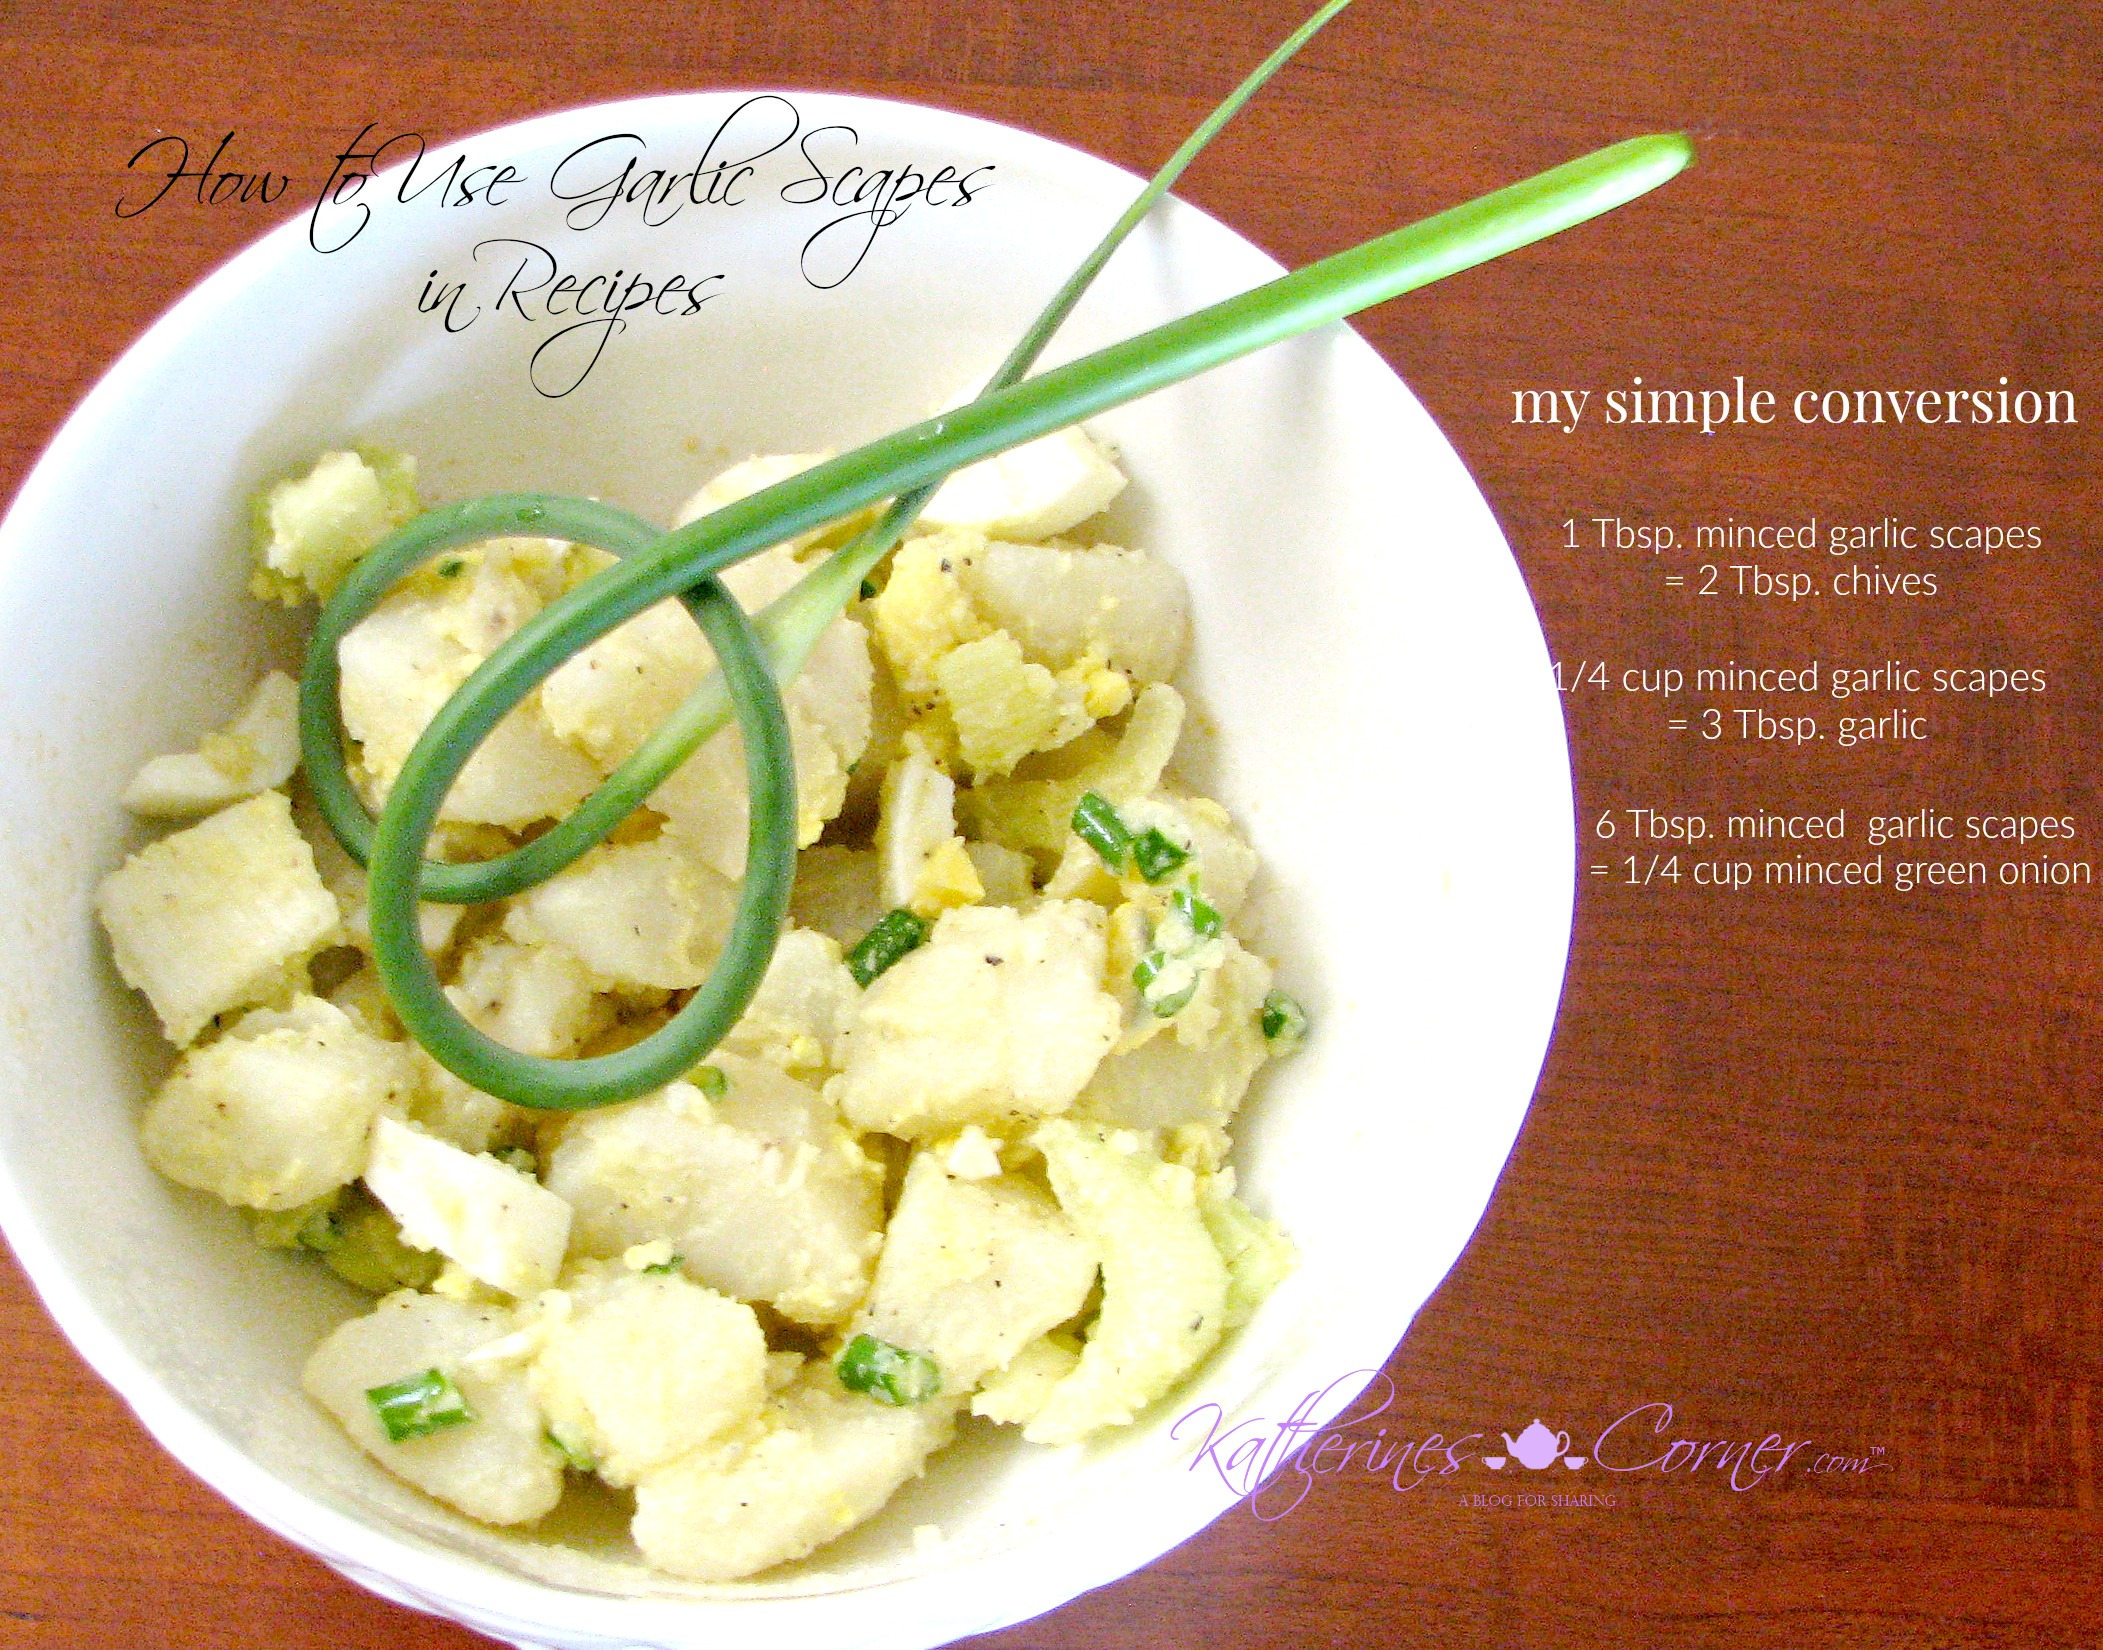 How to Use Garlic Scapes in Recipes